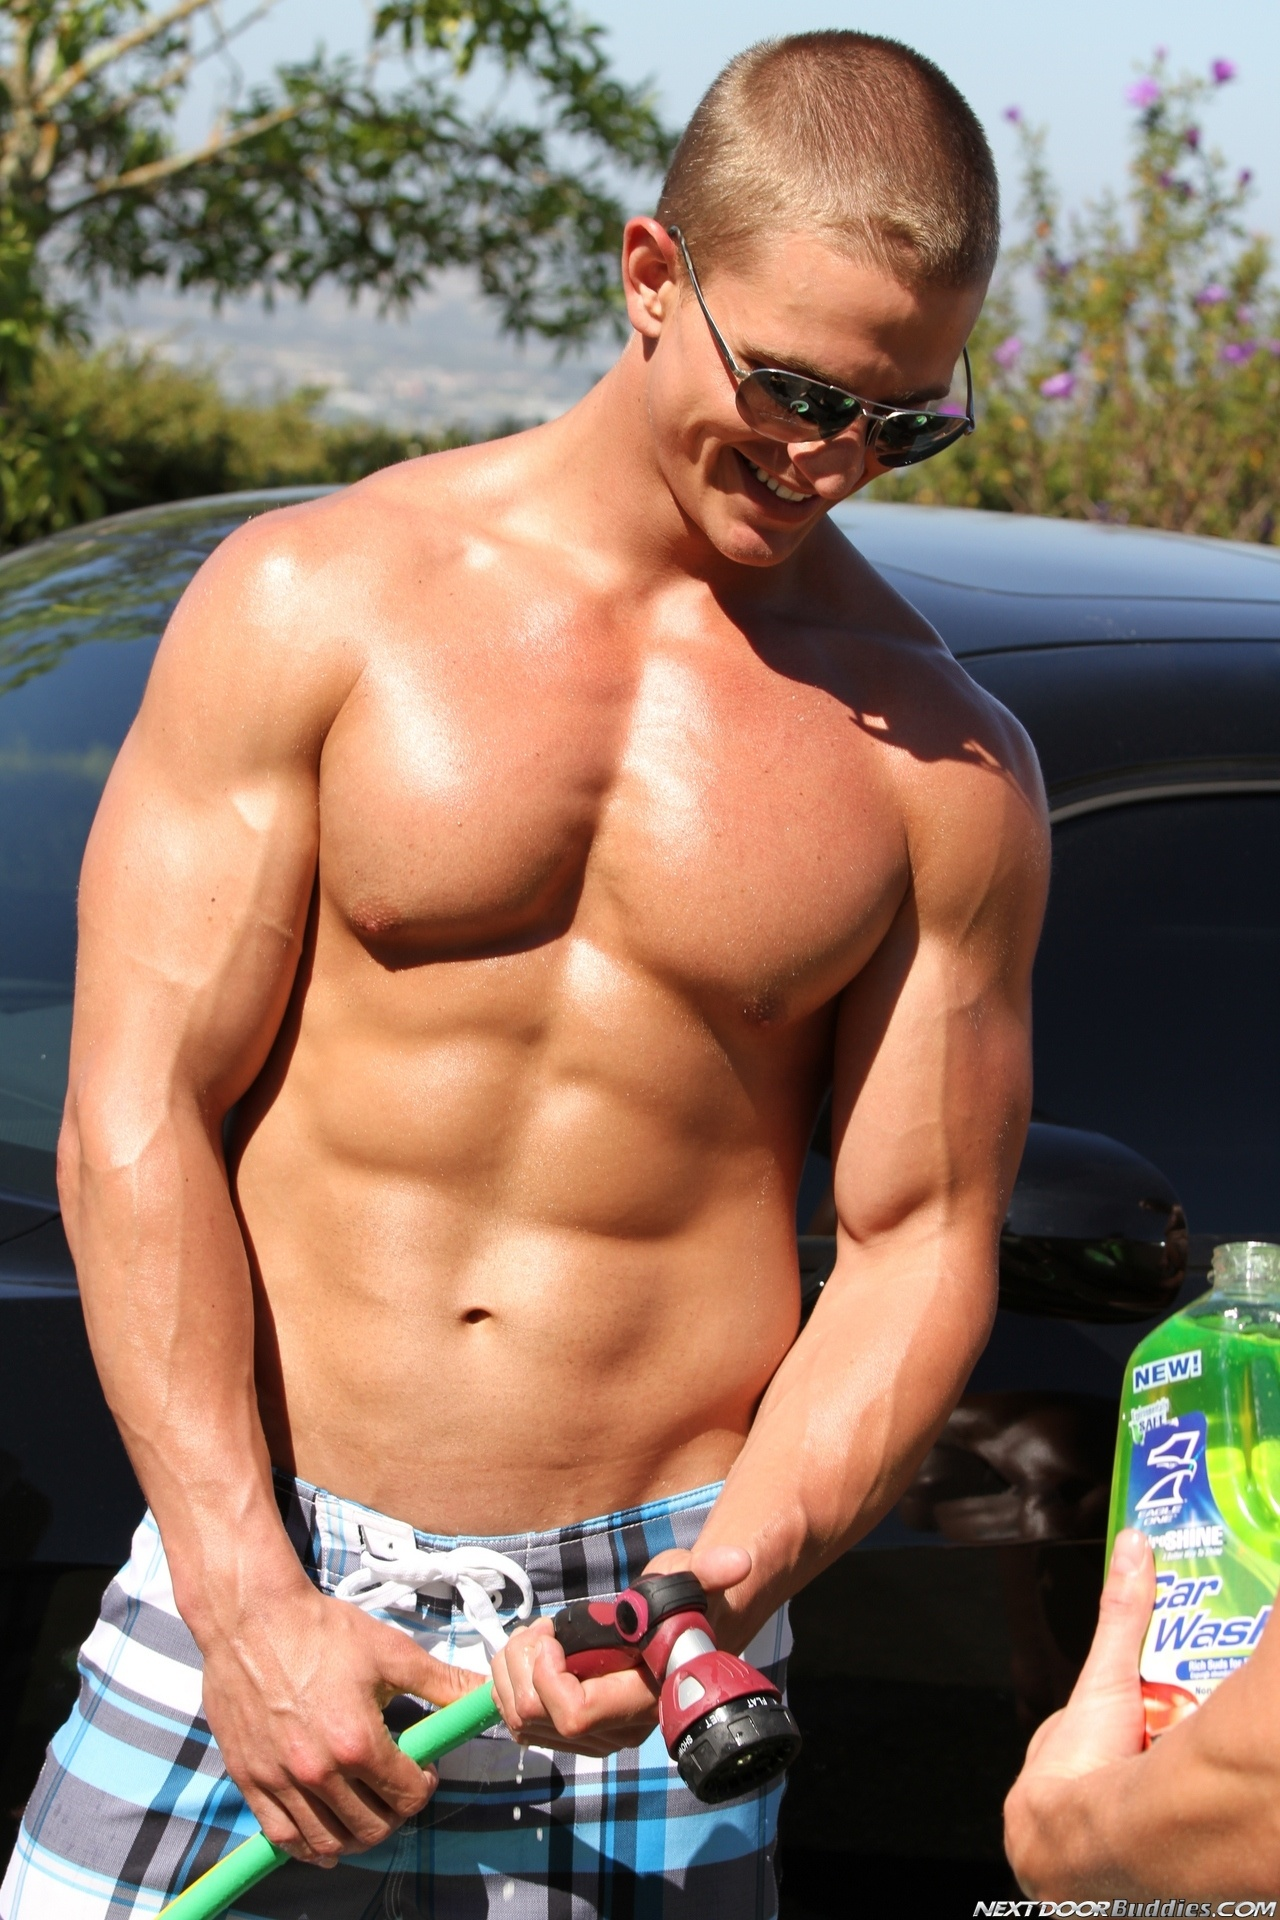 Marcus-Mojo-Brody-Wilder-Johnny-Torque-Rod-Daily-Donny-Wright-washing-a-car-in-Suds-Studs-Next-Door-Studios-17